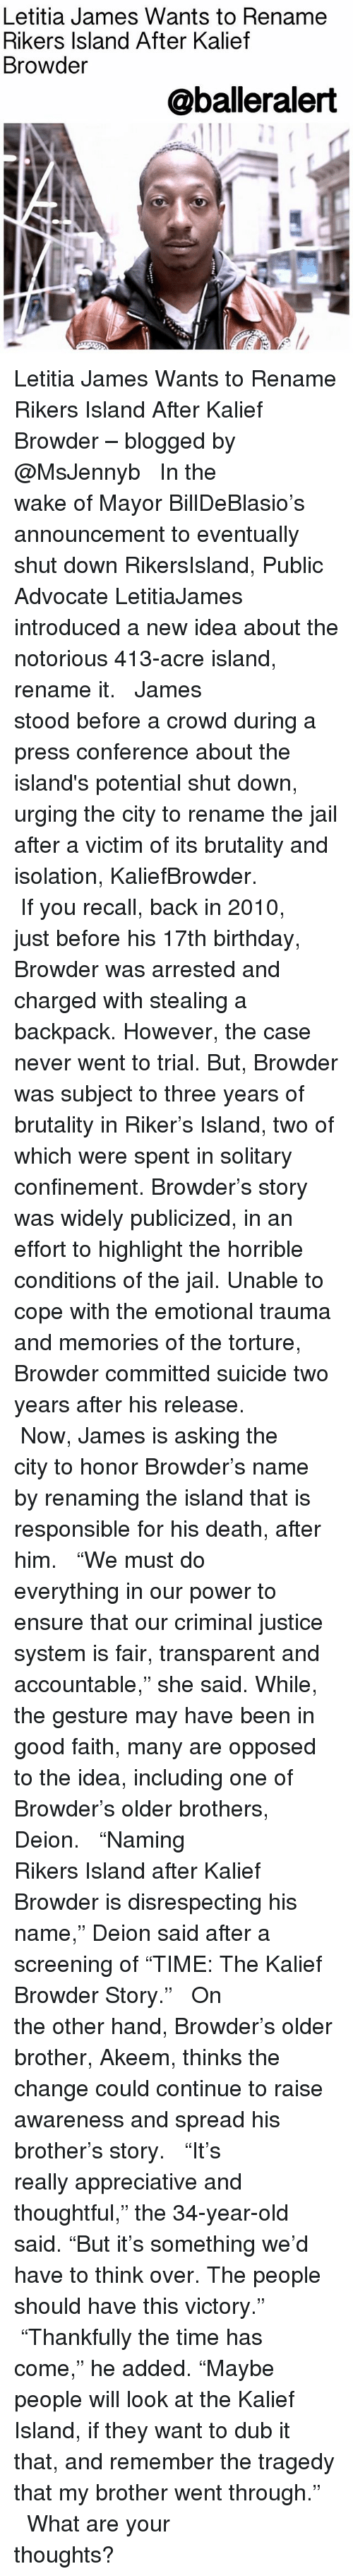 """17Th Birthdays: Letitia James Wants to Rename  Rikers Island After Kalief  Browder  @balleralert Letitia James Wants to Rename Rikers Island After Kalief Browder – blogged by @MsJennyb ⠀⠀⠀⠀⠀⠀⠀ ⠀⠀⠀⠀⠀⠀⠀ In the wake of Mayor BillDeBlasio's announcement to eventually shut down RikersIsland, Public Advocate LetitiaJames introduced a new idea about the notorious 413-acre island, rename it. ⠀⠀⠀⠀⠀⠀⠀ ⠀⠀⠀⠀⠀⠀⠀ James stood before a crowd during a press conference about the island's potential shut down, urging the city to rename the jail after a victim of its brutality and isolation, KaliefBrowder. ⠀⠀⠀⠀⠀⠀⠀ ⠀⠀⠀⠀⠀⠀⠀ If you recall, back in 2010, just before his 17th birthday, Browder was arrested and charged with stealing a backpack. However, the case never went to trial. But, Browder was subject to three years of brutality in Riker's Island, two of which were spent in solitary confinement. Browder's story was widely publicized, in an effort to highlight the horrible conditions of the jail. Unable to cope with the emotional trauma and memories of the torture, Browder committed suicide two years after his release. ⠀⠀⠀⠀⠀⠀⠀ ⠀⠀⠀⠀⠀⠀⠀ Now, James is asking the city to honor Browder's name by renaming the island that is responsible for his death, after him. ⠀⠀⠀⠀⠀⠀⠀ ⠀⠀⠀⠀⠀⠀⠀ """"We must do everything in our power to ensure that our criminal justice system is fair, transparent and accountable,"""" she said. While, the gesture may have been in good faith, many are opposed to the idea, including one of Browder's older brothers, Deion. ⠀⠀⠀⠀⠀⠀⠀ ⠀⠀⠀⠀⠀⠀⠀ """"Naming Rikers Island after Kalief Browder is disrespecting his name,"""" Deion said after a screening of """"TIME: The Kalief Browder Story."""" ⠀⠀⠀⠀⠀⠀⠀ ⠀⠀⠀⠀⠀⠀⠀ On the other hand, Browder's older brother, Akeem, thinks the change could continue to raise awareness and spread his brother's story. ⠀⠀⠀⠀⠀⠀⠀ ⠀⠀⠀⠀⠀⠀⠀ """"It's really appreciative and thoughtful,"""" the 34-year-old said. """"But it's something we'd have to think over. The people should have this victory."""" ⠀⠀⠀⠀⠀⠀"""